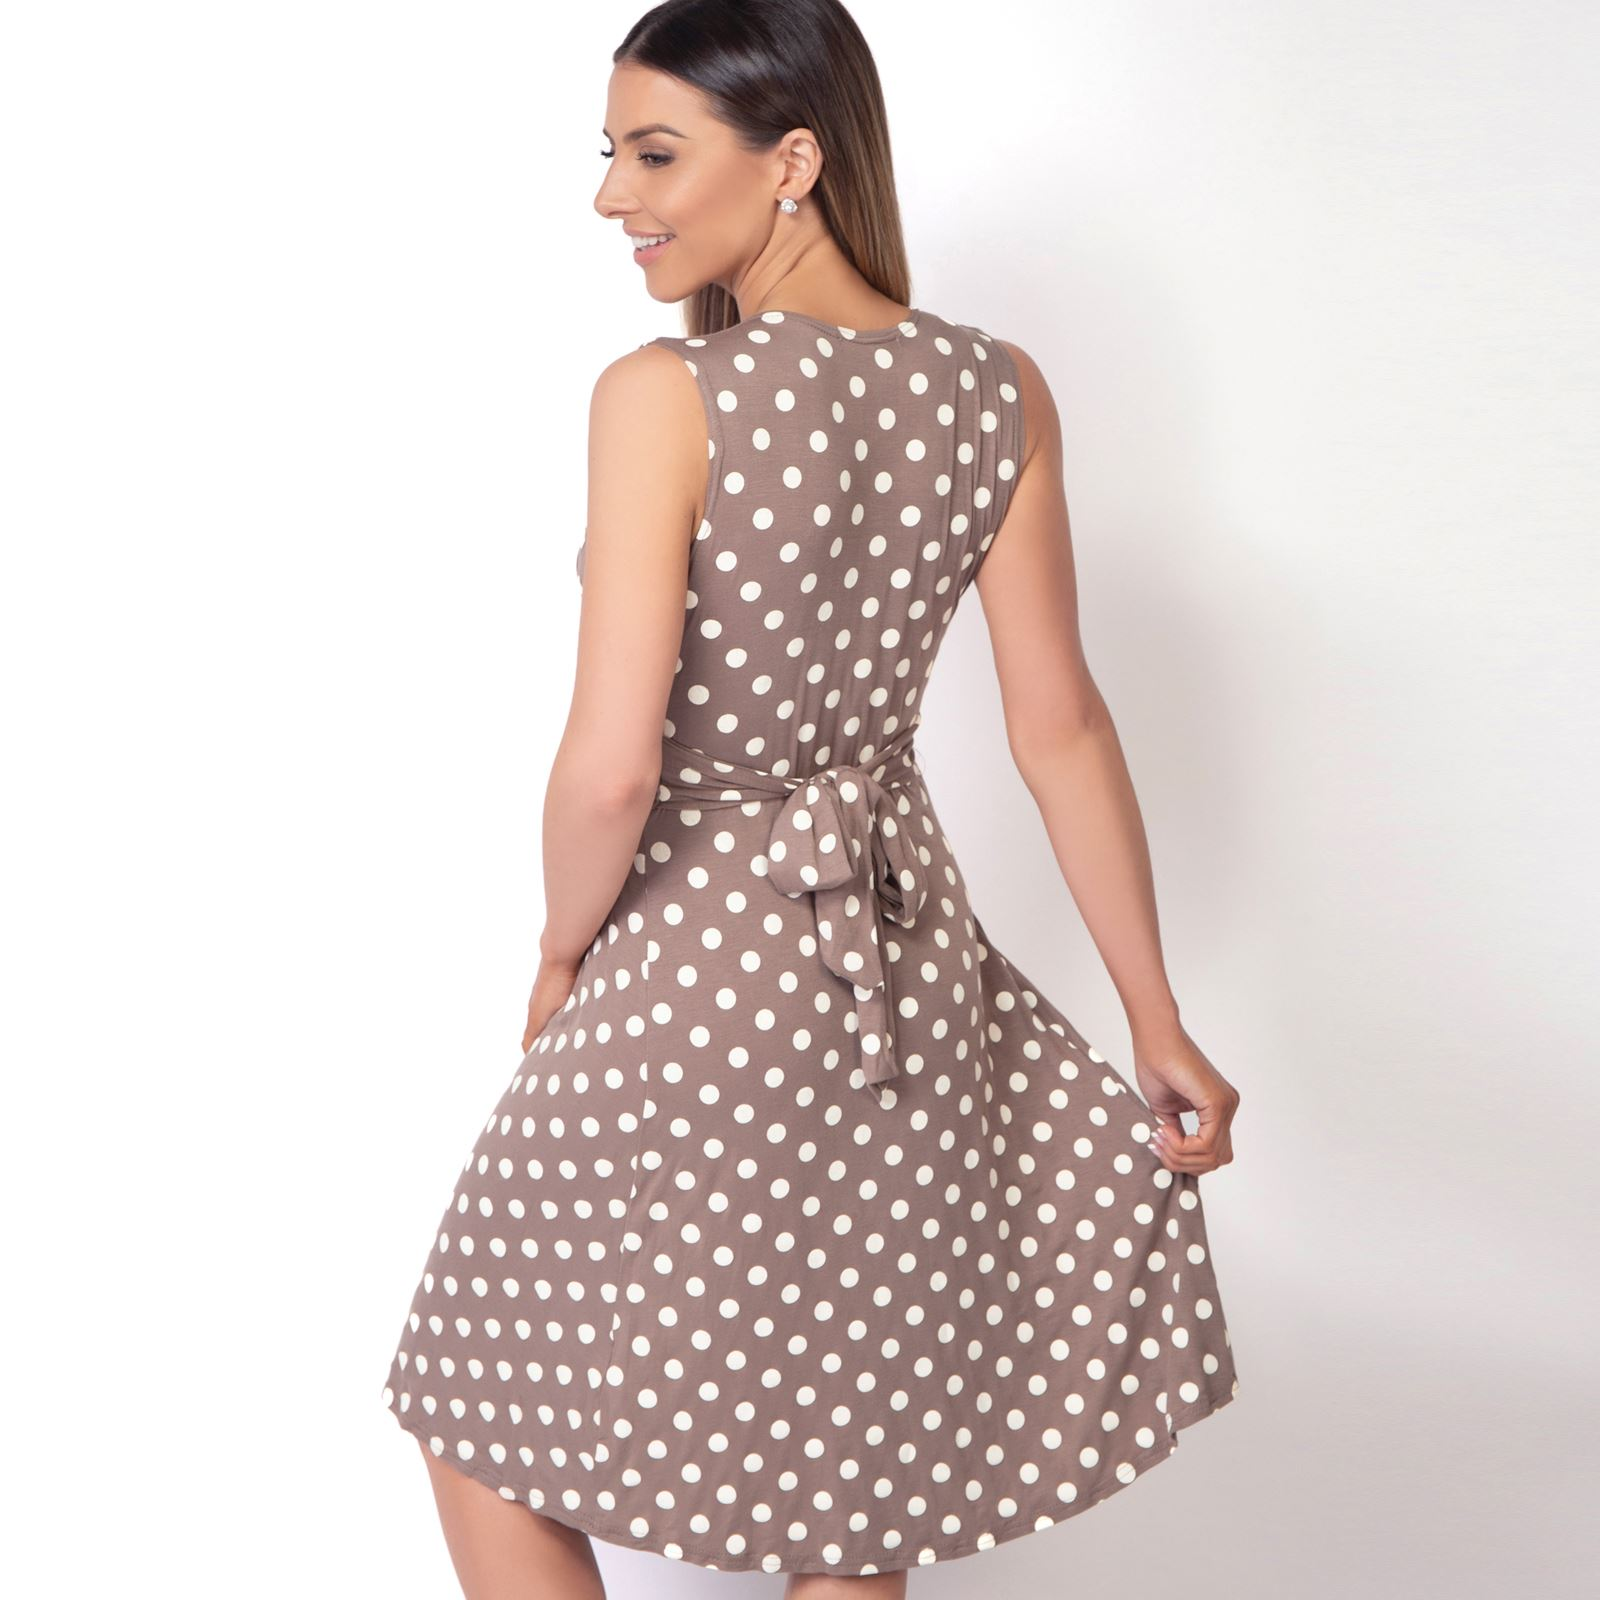 Womens-Polka-Dot-Retro-Dress-Pleated-Skirt-Wrap-Mini-V-Neck-Top-Swing-Party thumbnail 22